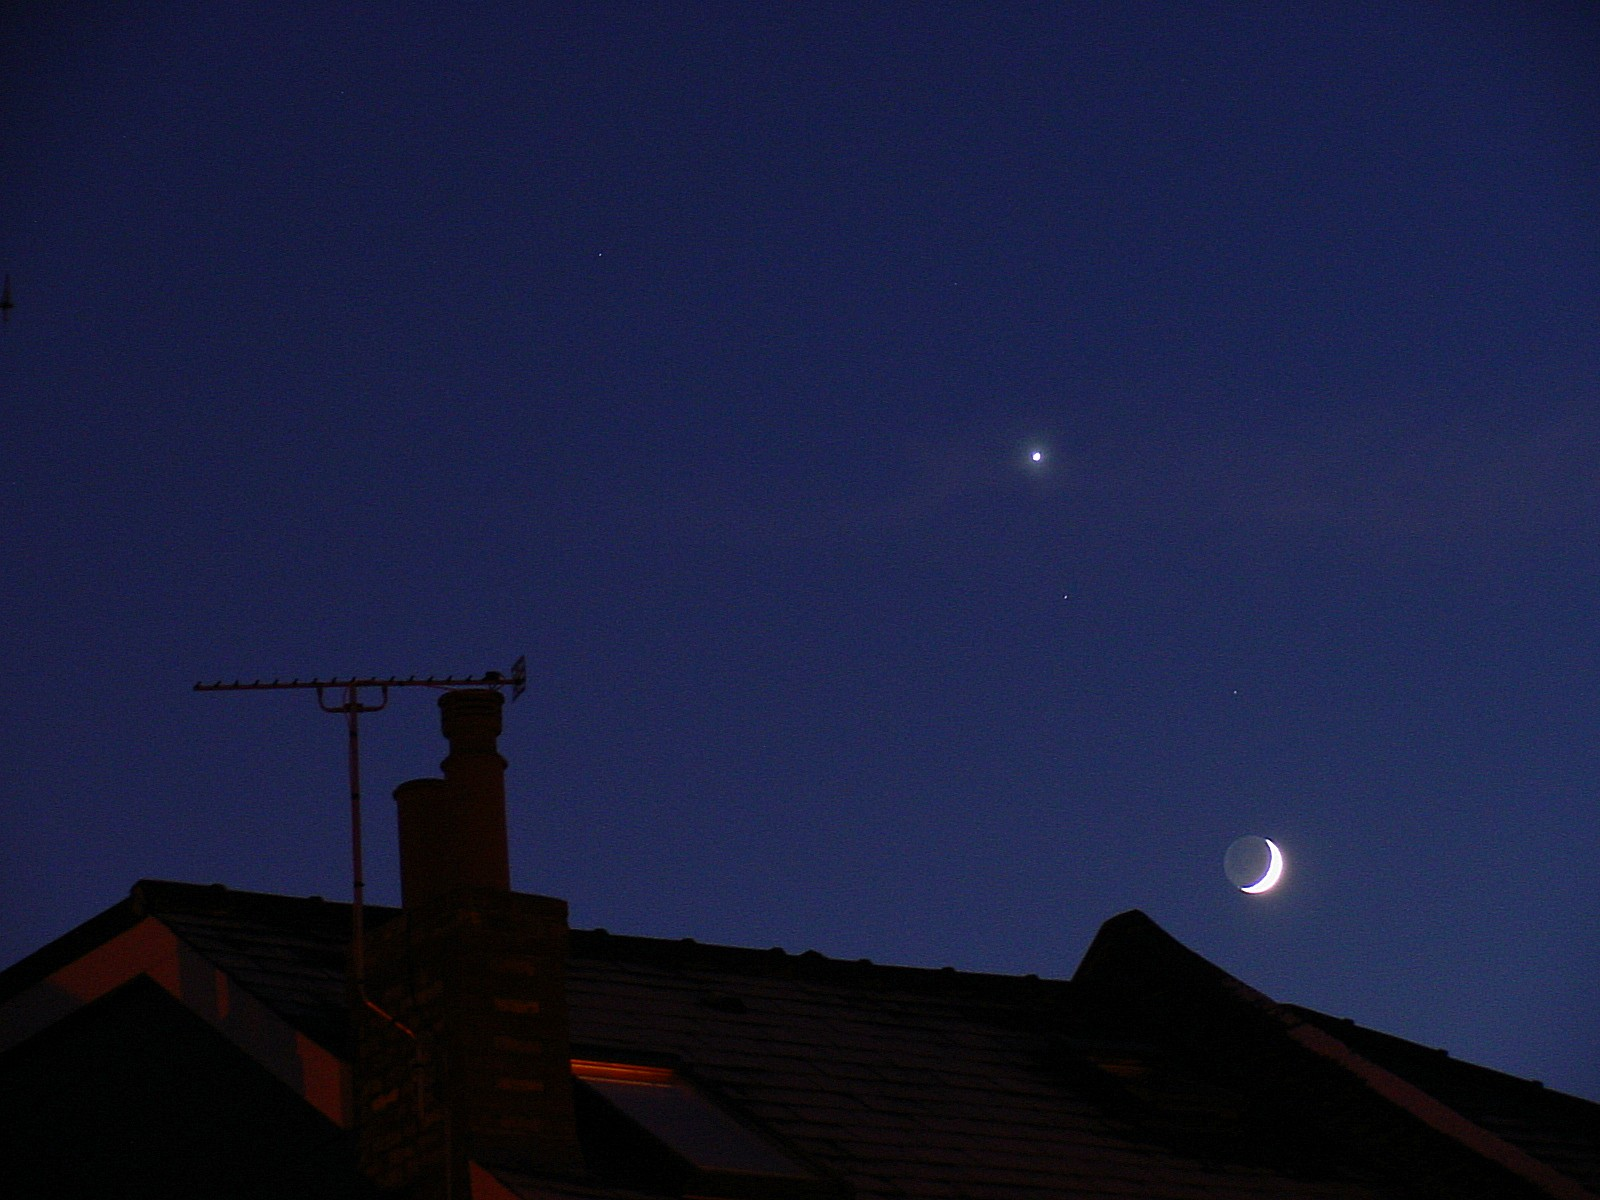 (Natural Science): planet Venus with the Moon as crescent seen over rooftops in London late December tweaked 1 BRM.jpg. D=2000-12-29 [Dec 29, 2000]; ...